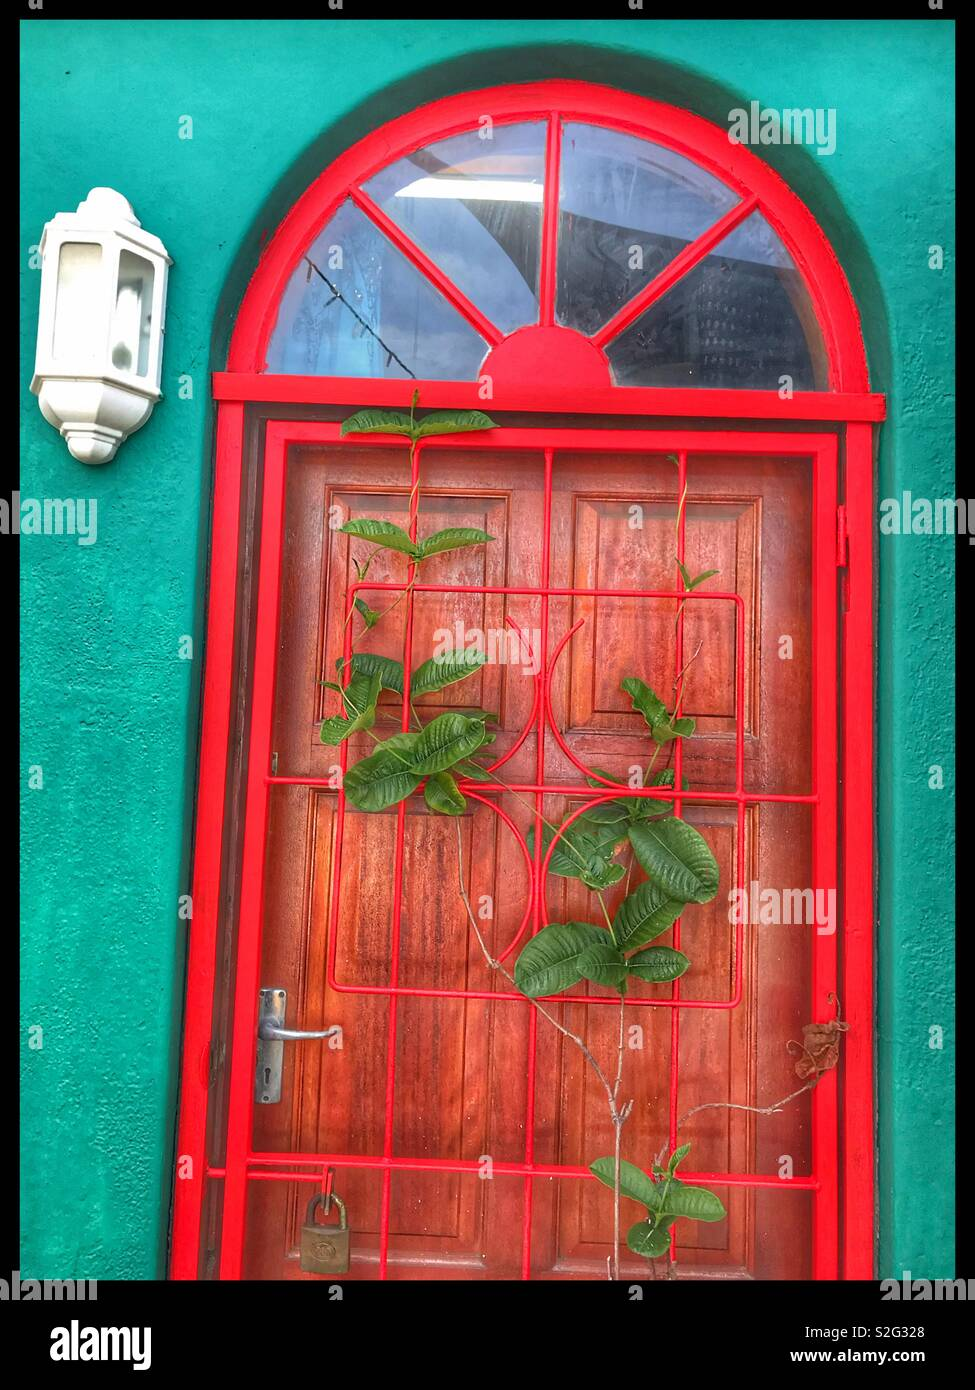 Green wall with red security gate hermanus south africa